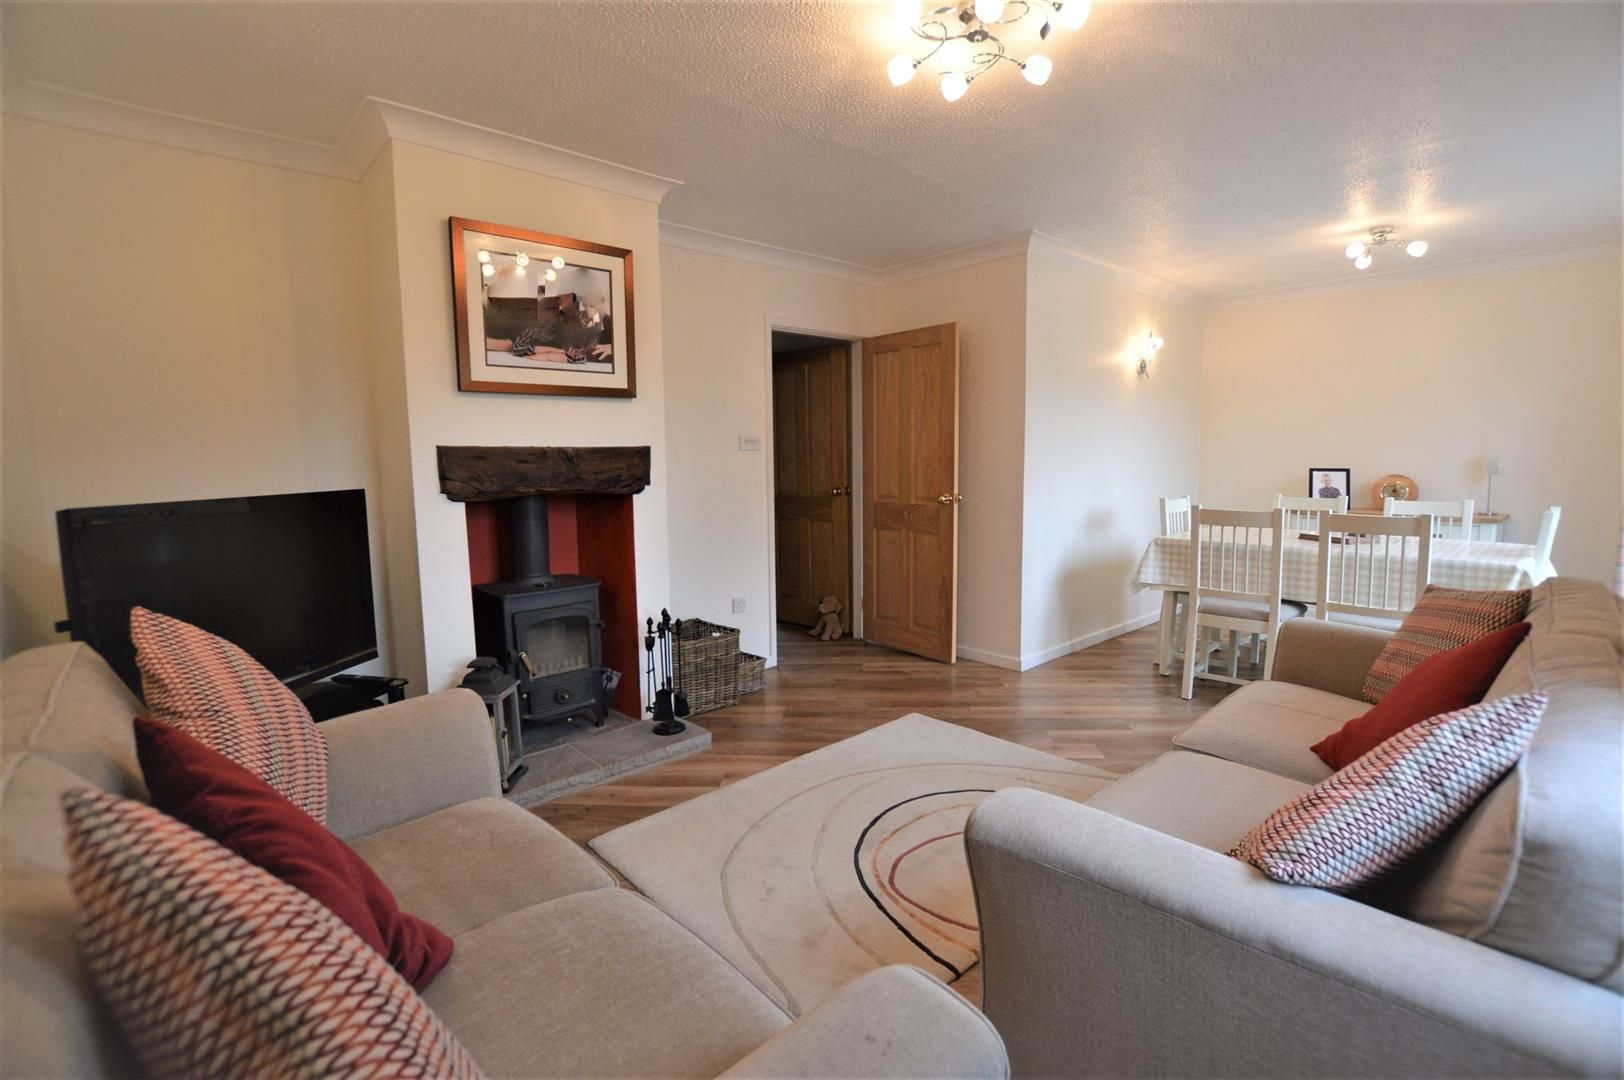 4 bed semi-detached for sale in Luston 3